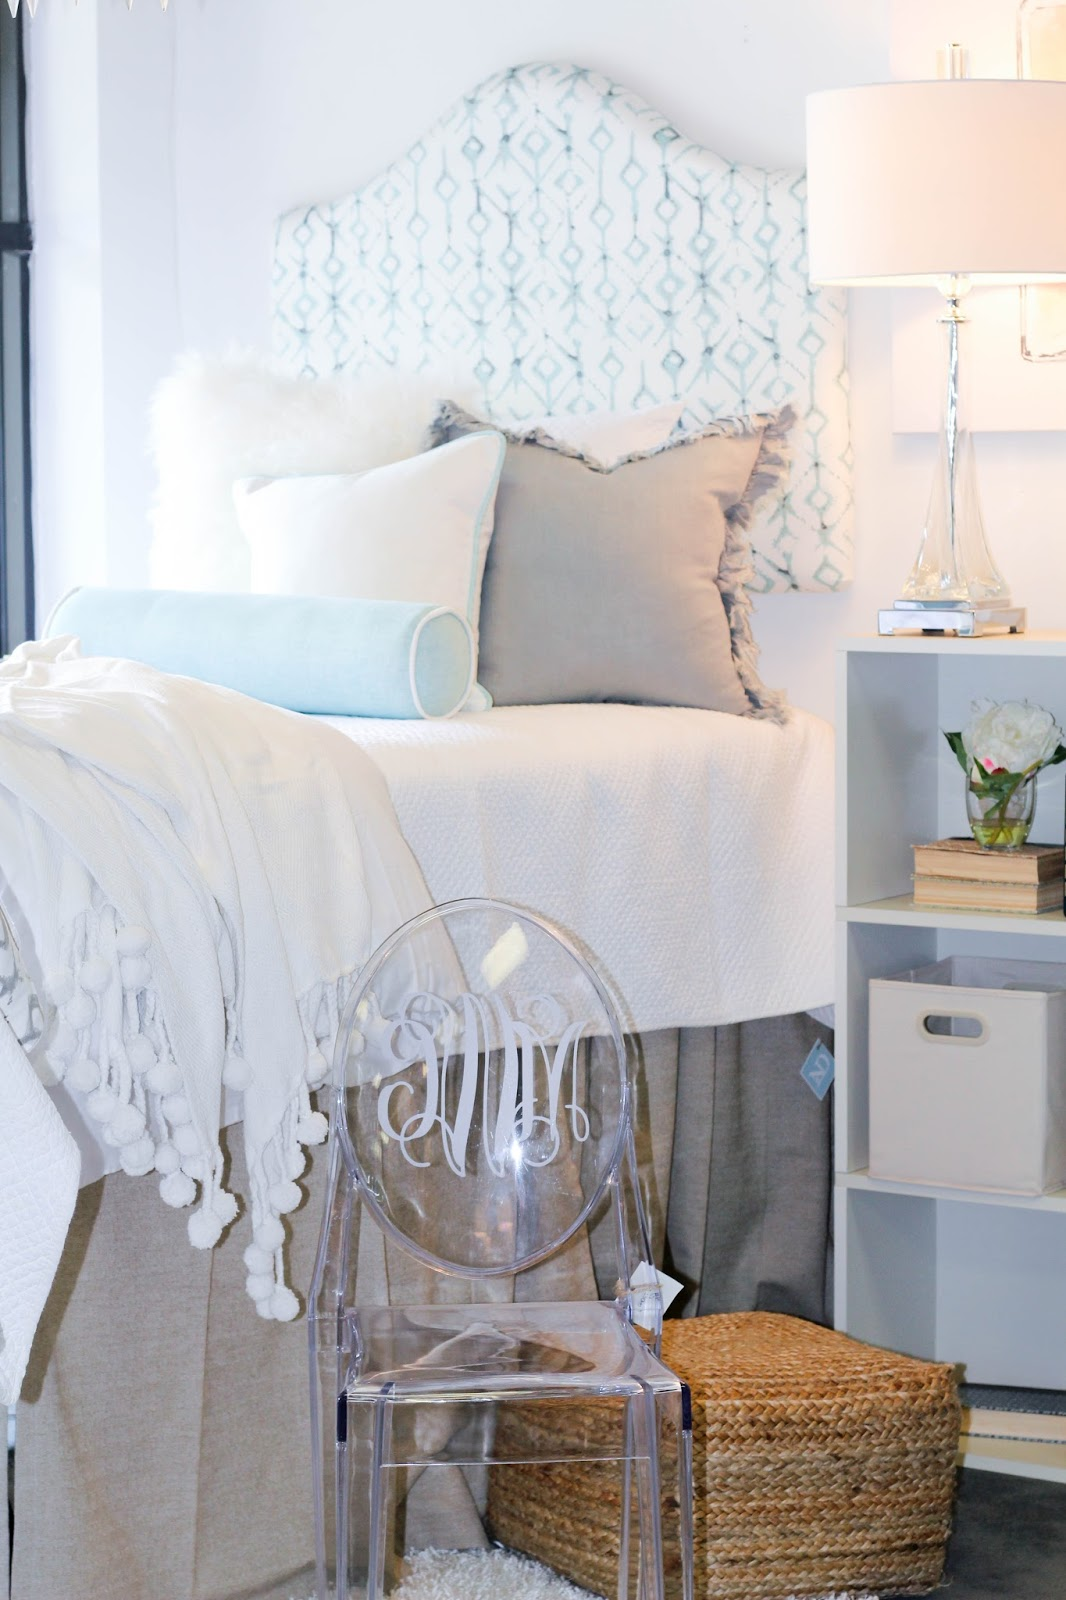 Dorm Room Styles: Prep In Your Step: Dorm Room Design With Not Just Dorms